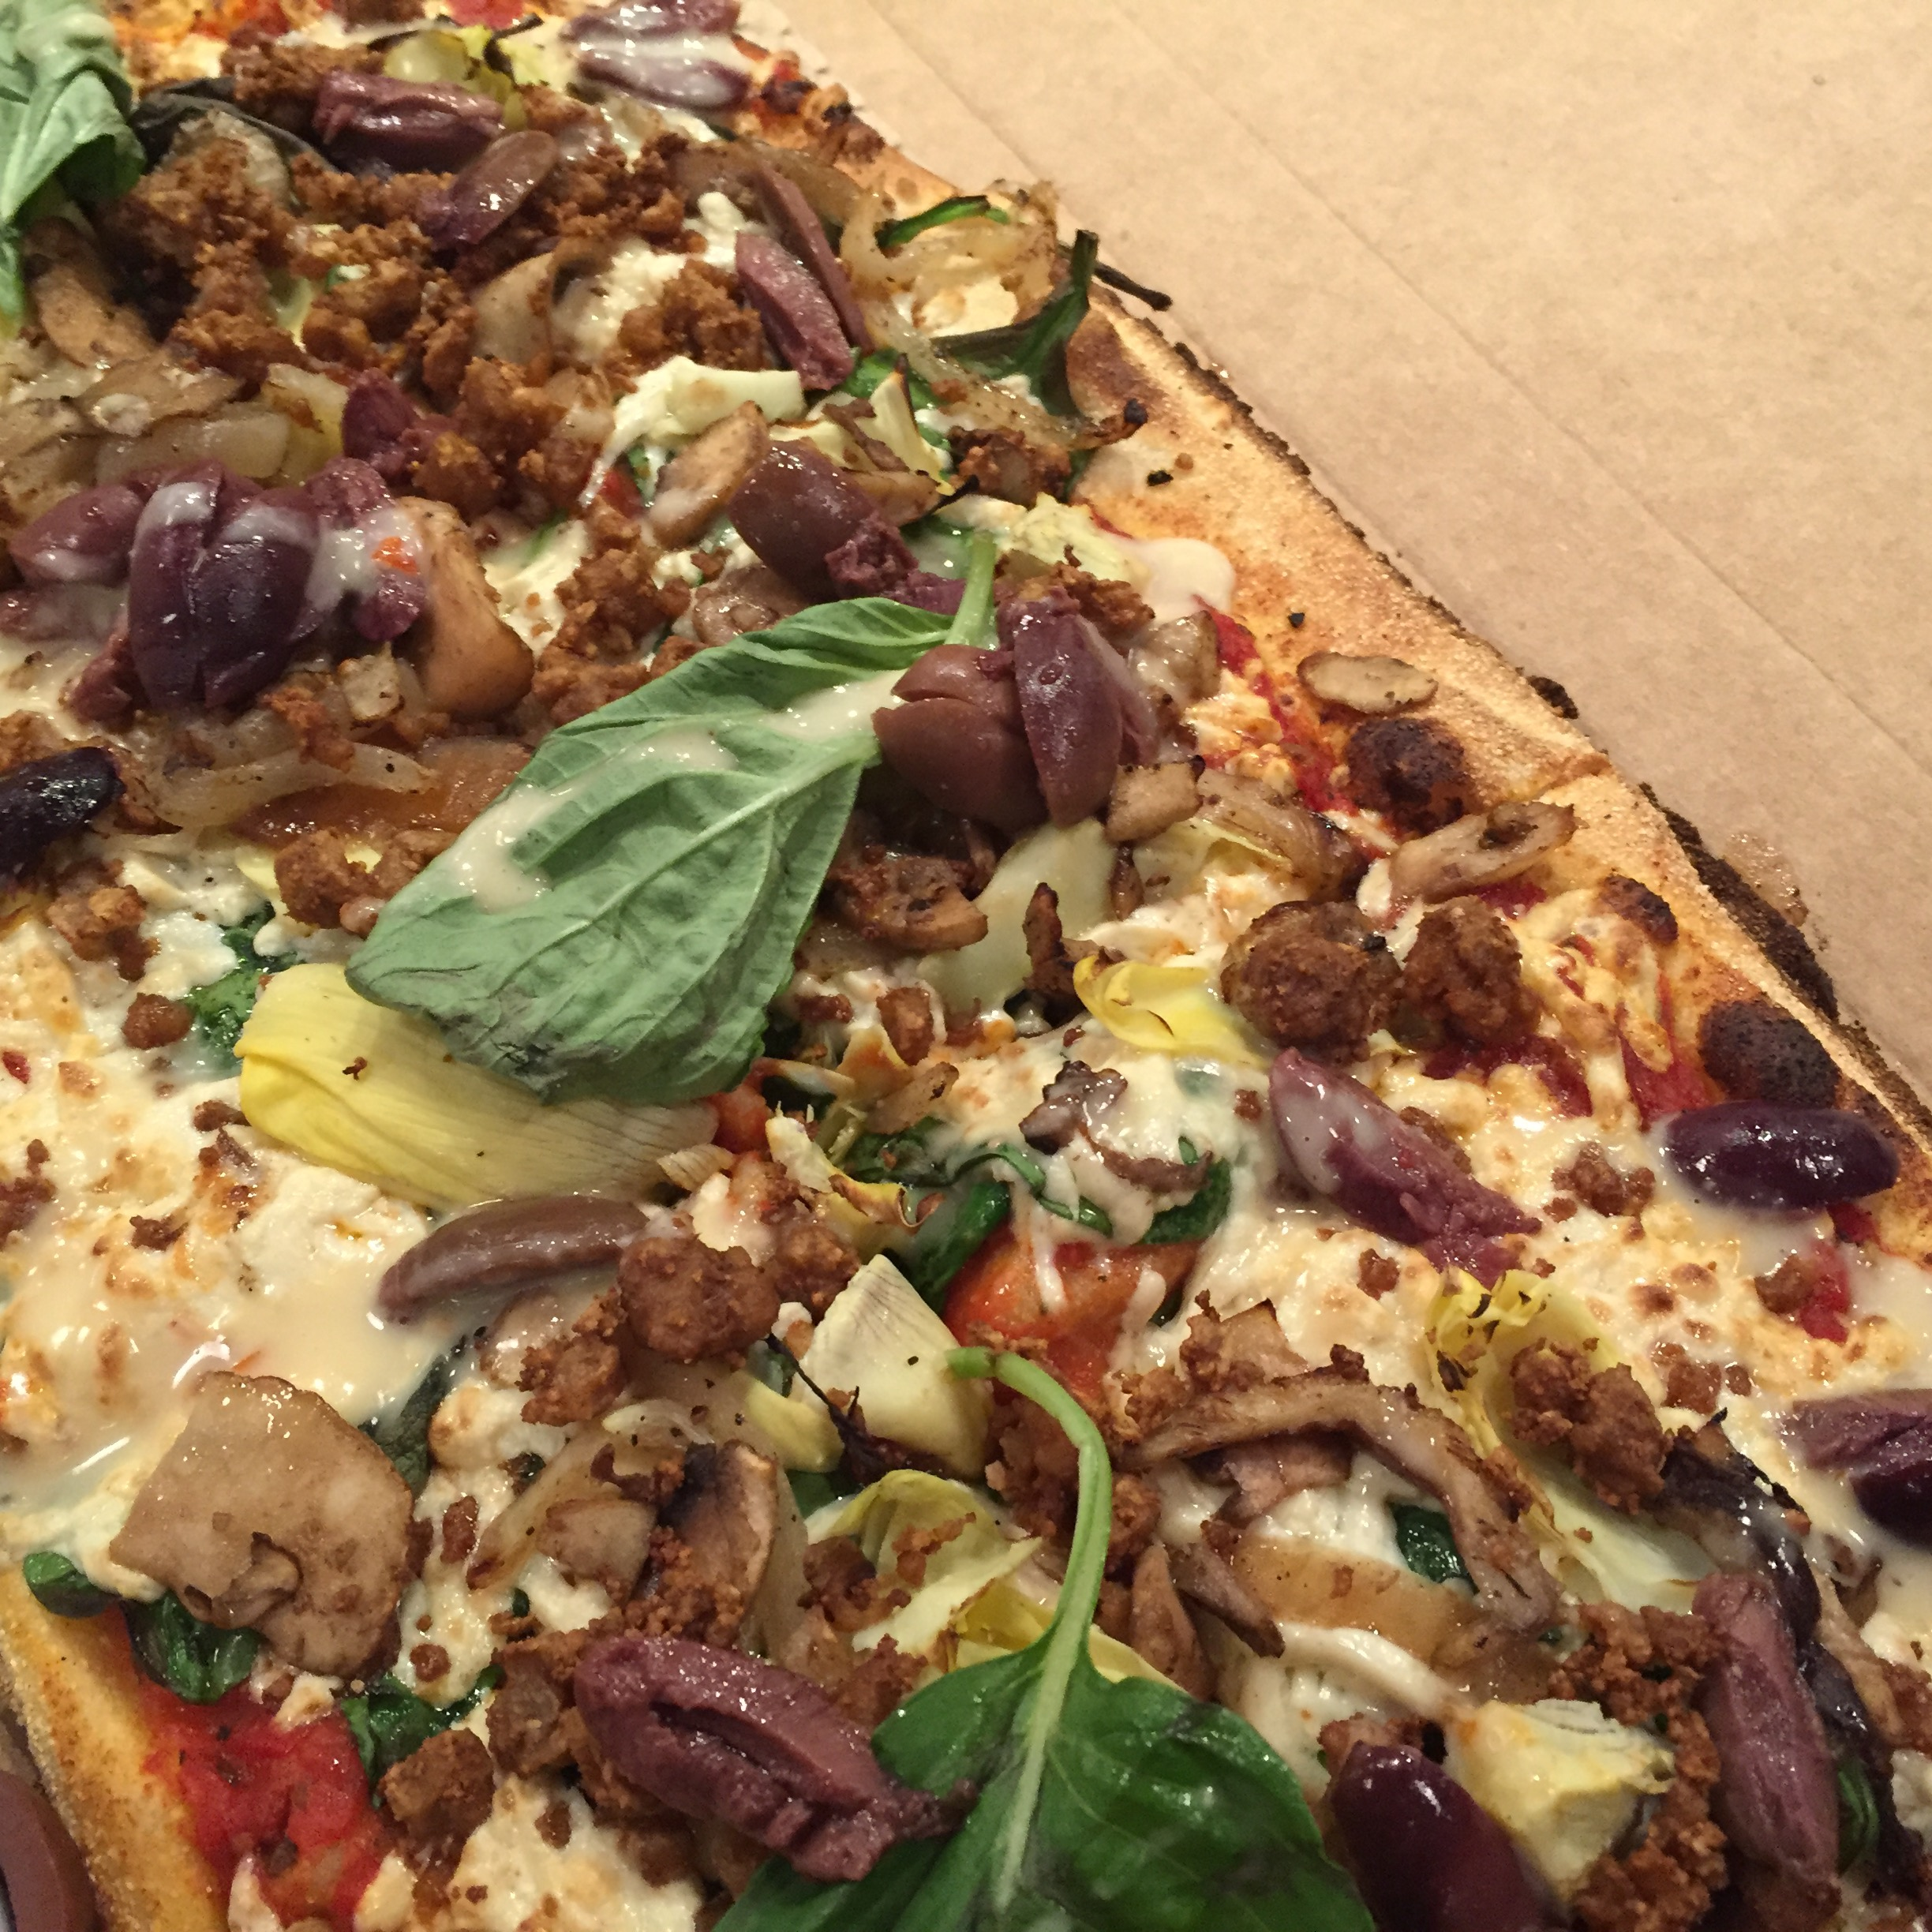 Pizza from &Pizza in DC-Toppings: mushrooms, olives, vegan crumble, vegan cheese, artichoke hearts, basil, garlic oil